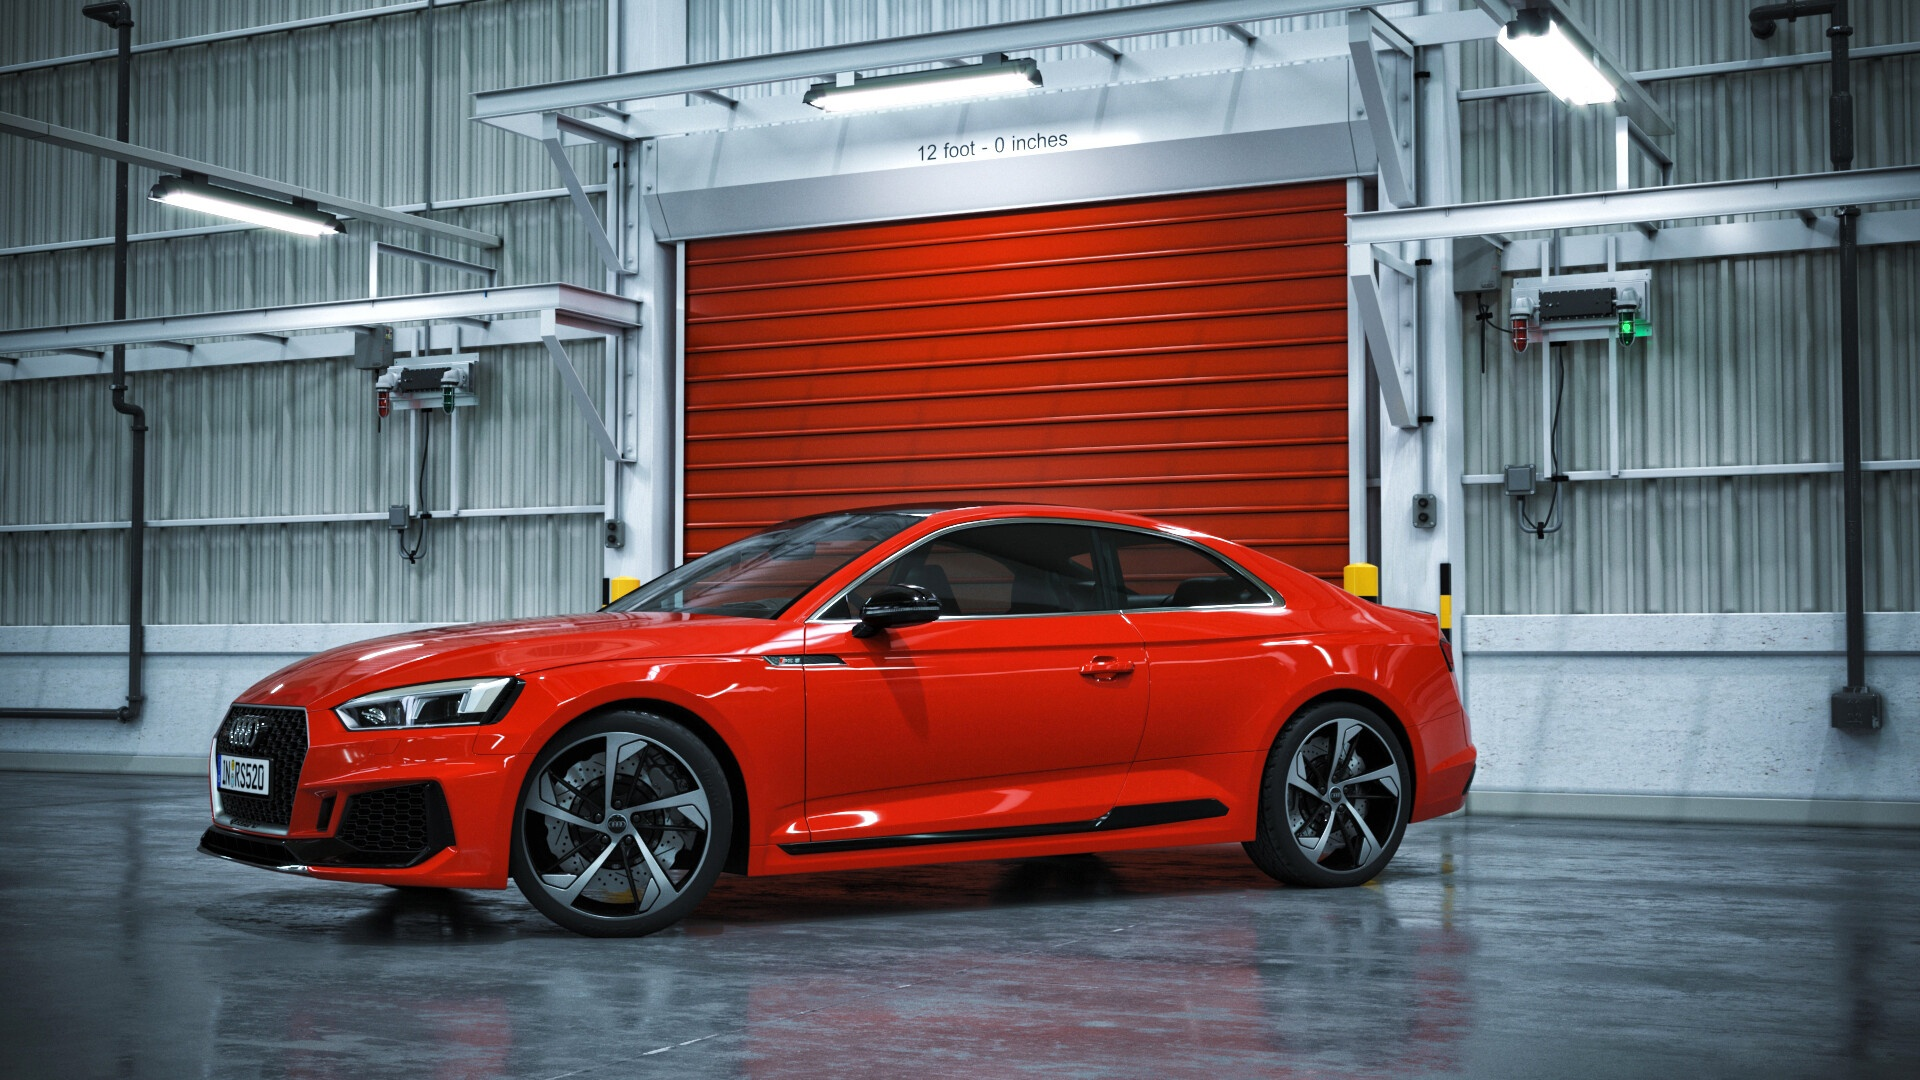 Audi Rs5 Wallpapers Wallpapers All Superior Audi Rs5 Wallpapers Backgrounds Wallpapersplanet Net